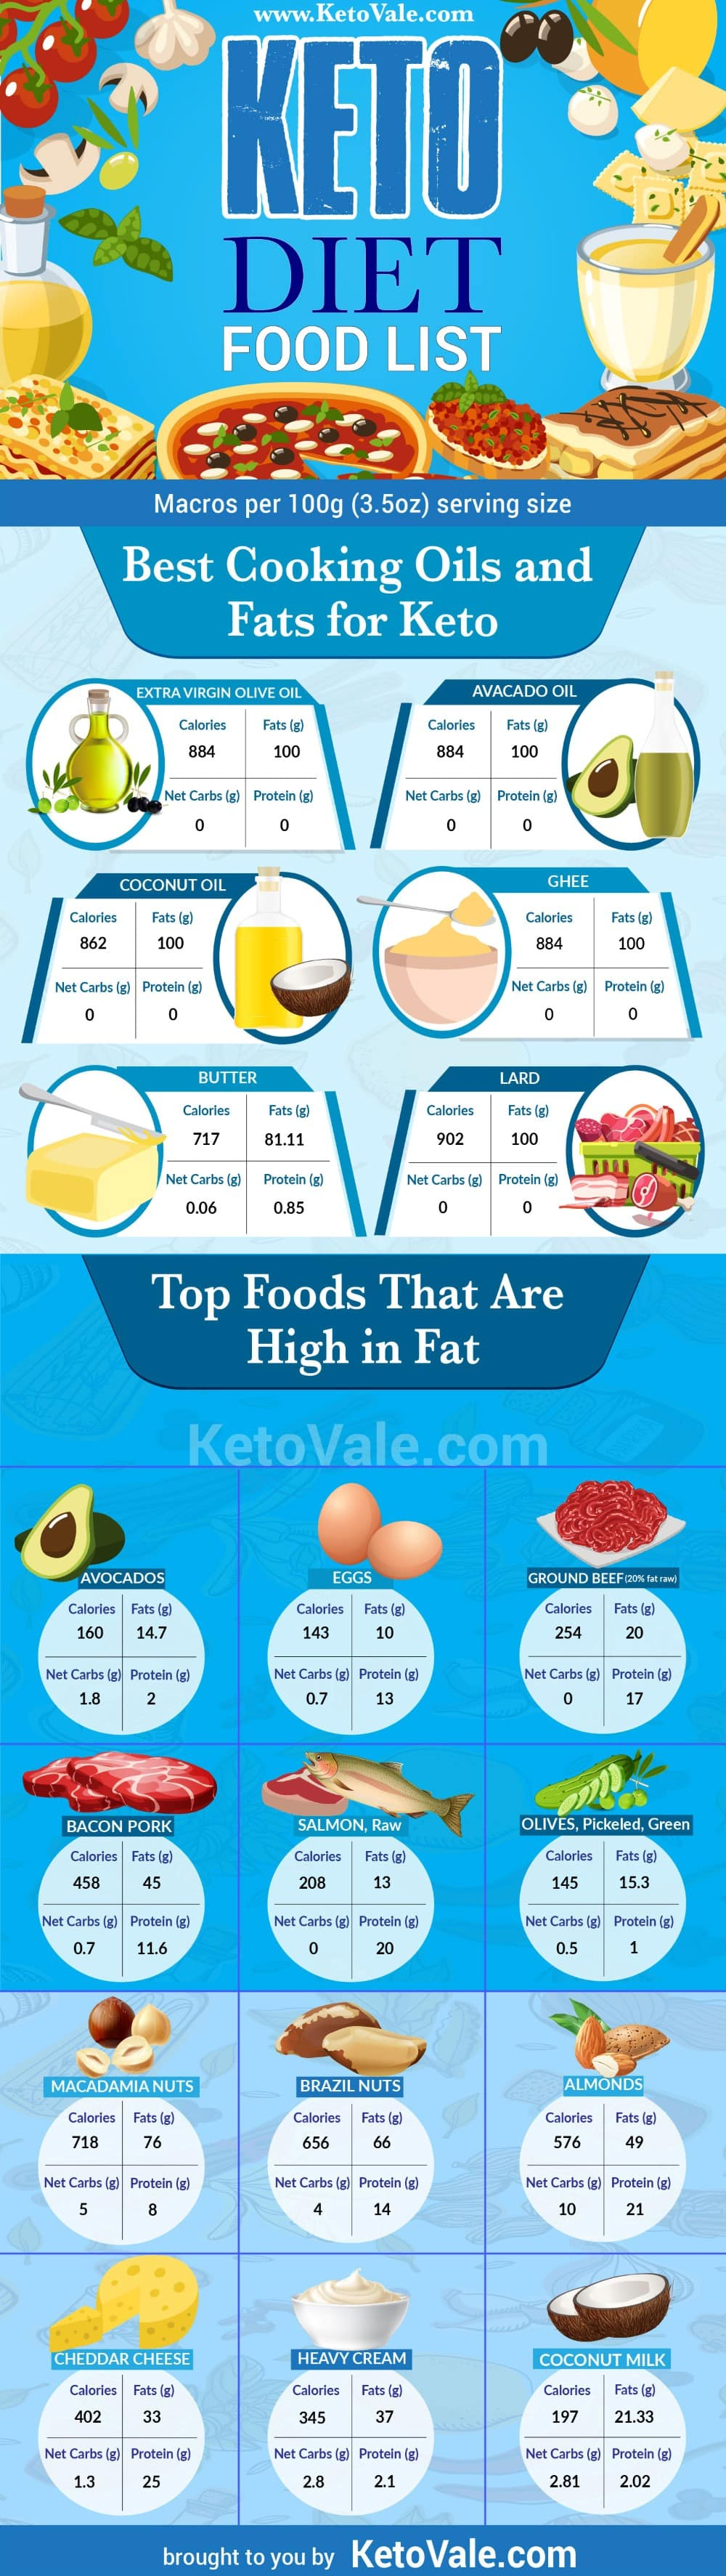 Best Fats and Oil on Keto Diet